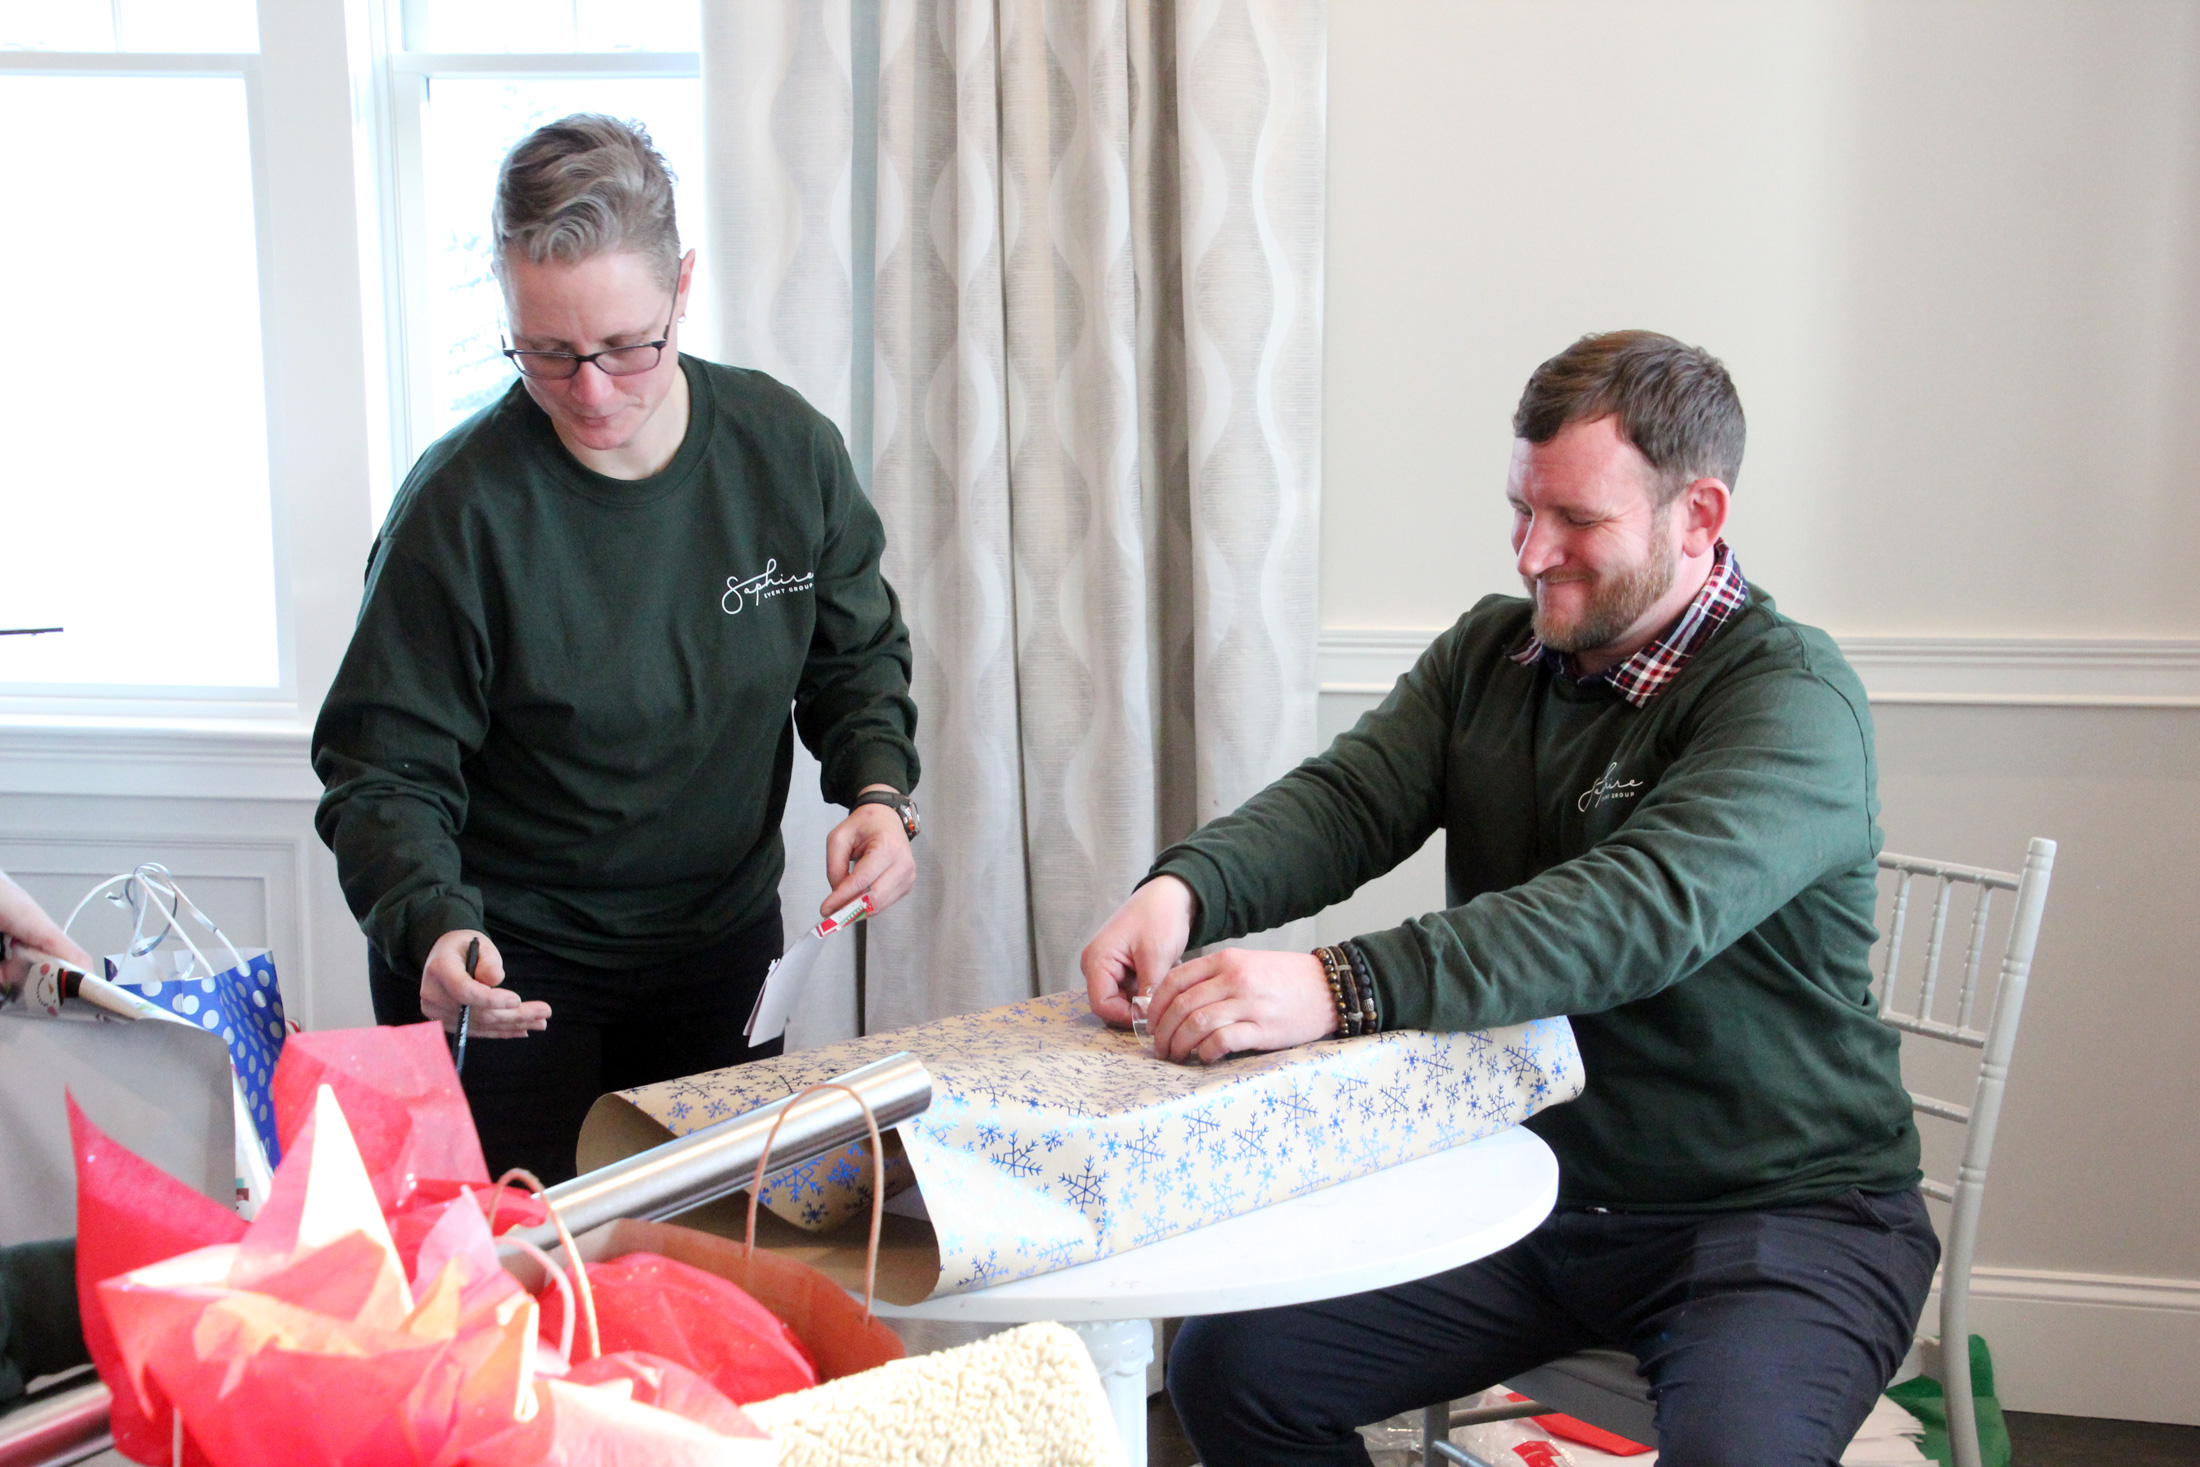 SEG employees work together to wrap holiday gifts